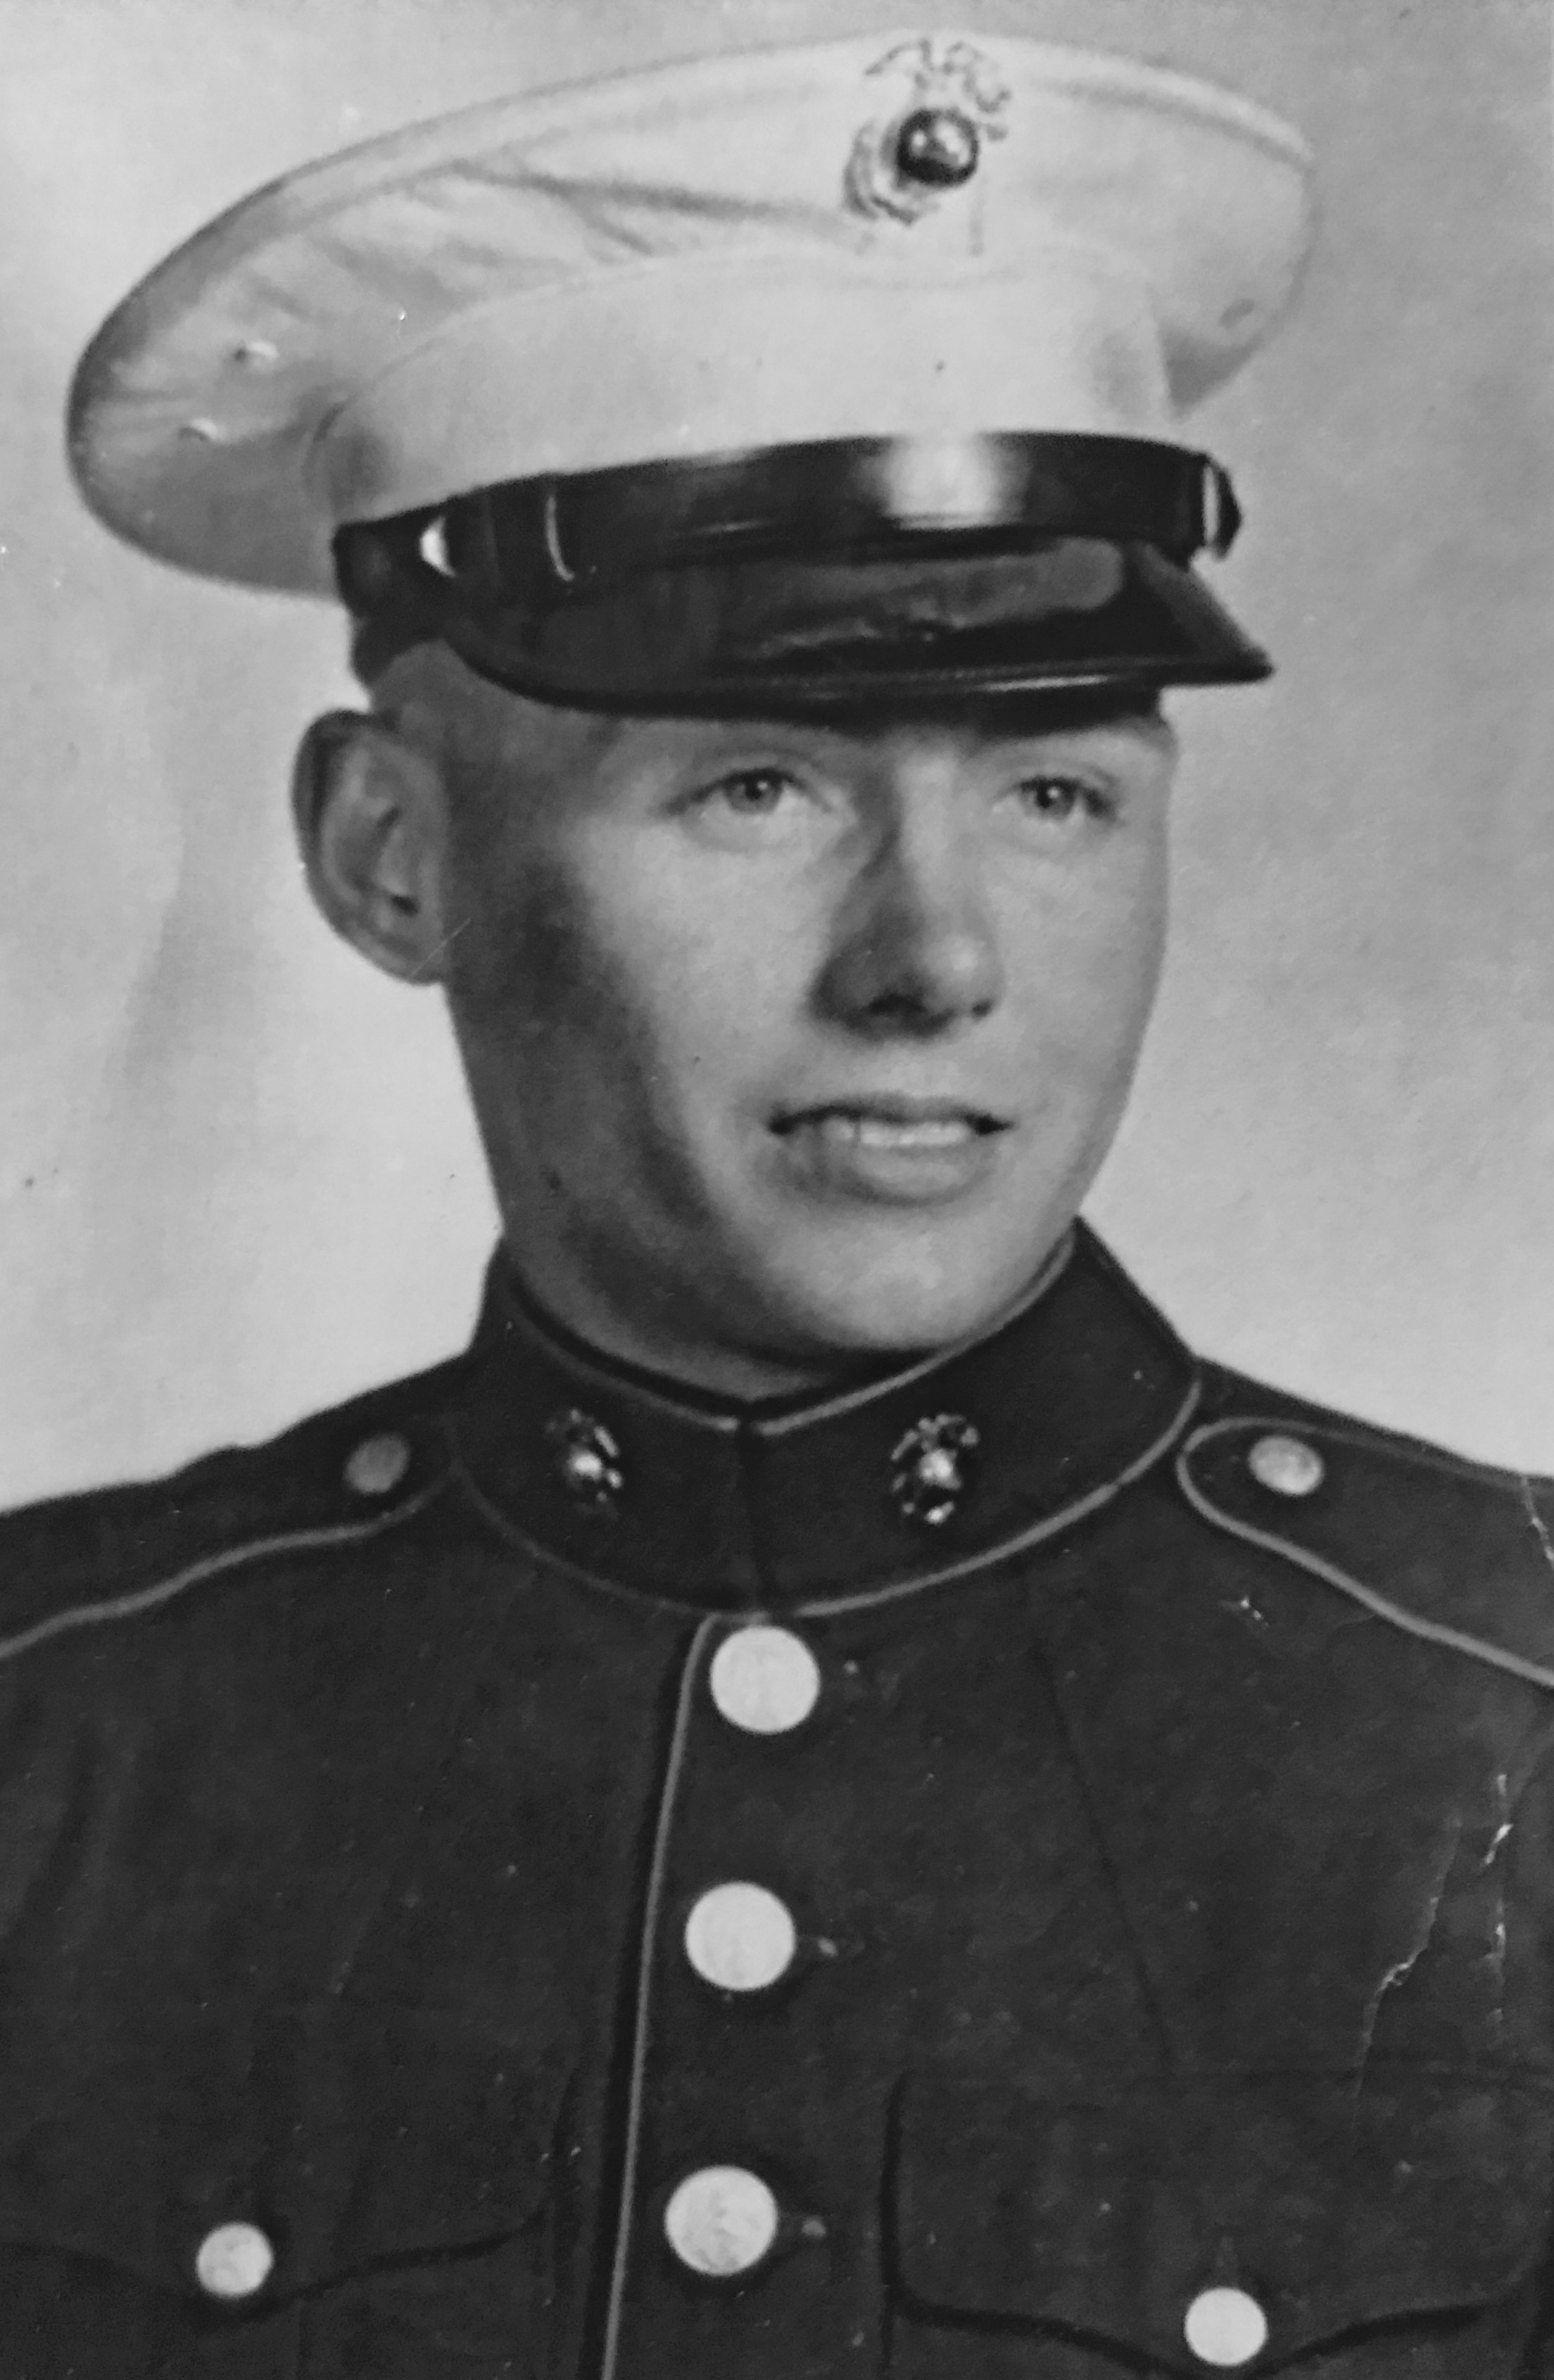 Papa's military photo (It's easy to see why Nana fell in love with him...and where our entire family gets their vanity from. What a looker!)